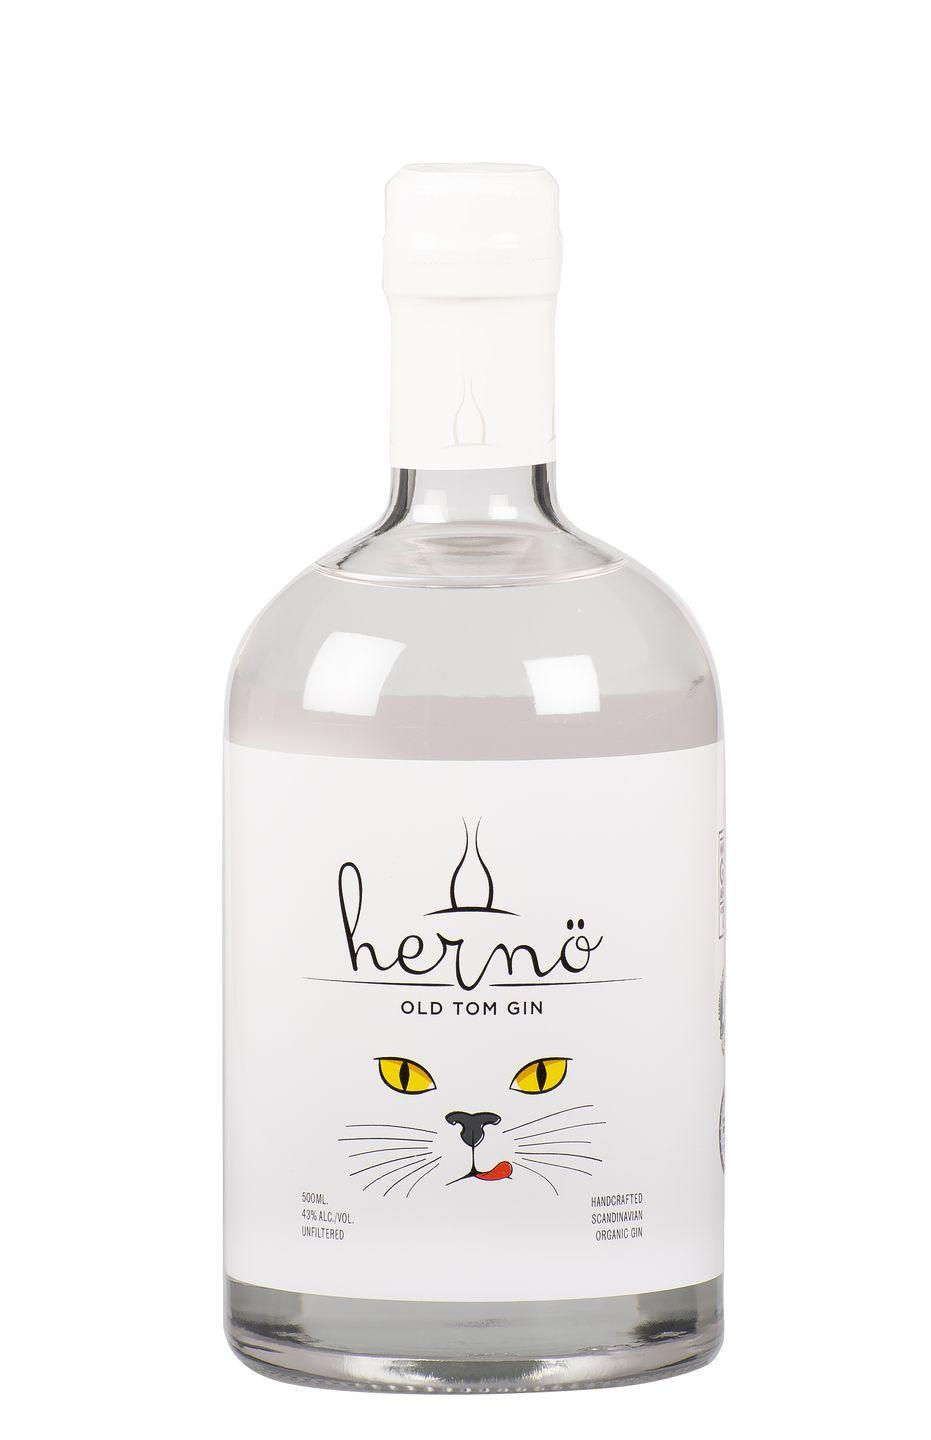 """<p>Packaged in an adorable bottle, this spirit is described as a """"botanically intense style of gin."""" It's full-bodied with a woody spice. And followed by bright, juicy, juniper and floral notes. </p><p><strong>Herno, £34.89</strong> </p><p><a class=""""link rapid-noclick-resp"""" href=""""https://www.amazon.co.uk/Herno-Old-Tom-Hern%C3%B6-50cl/dp/B00OXVQB50/ref=sr_1_2?dchild=1&keywords=herno+gin&qid=1591178239&sr=8-2&tag=hearstuk-yahoo-21&ascsubtag=%5Bartid%7C2159.g.29069585%5Bsrc%7Cyahoo-uk"""" rel=""""nofollow noopener"""" target=""""_blank"""" data-ylk=""""slk:BUY NOW"""">BUY NOW</a></p>"""